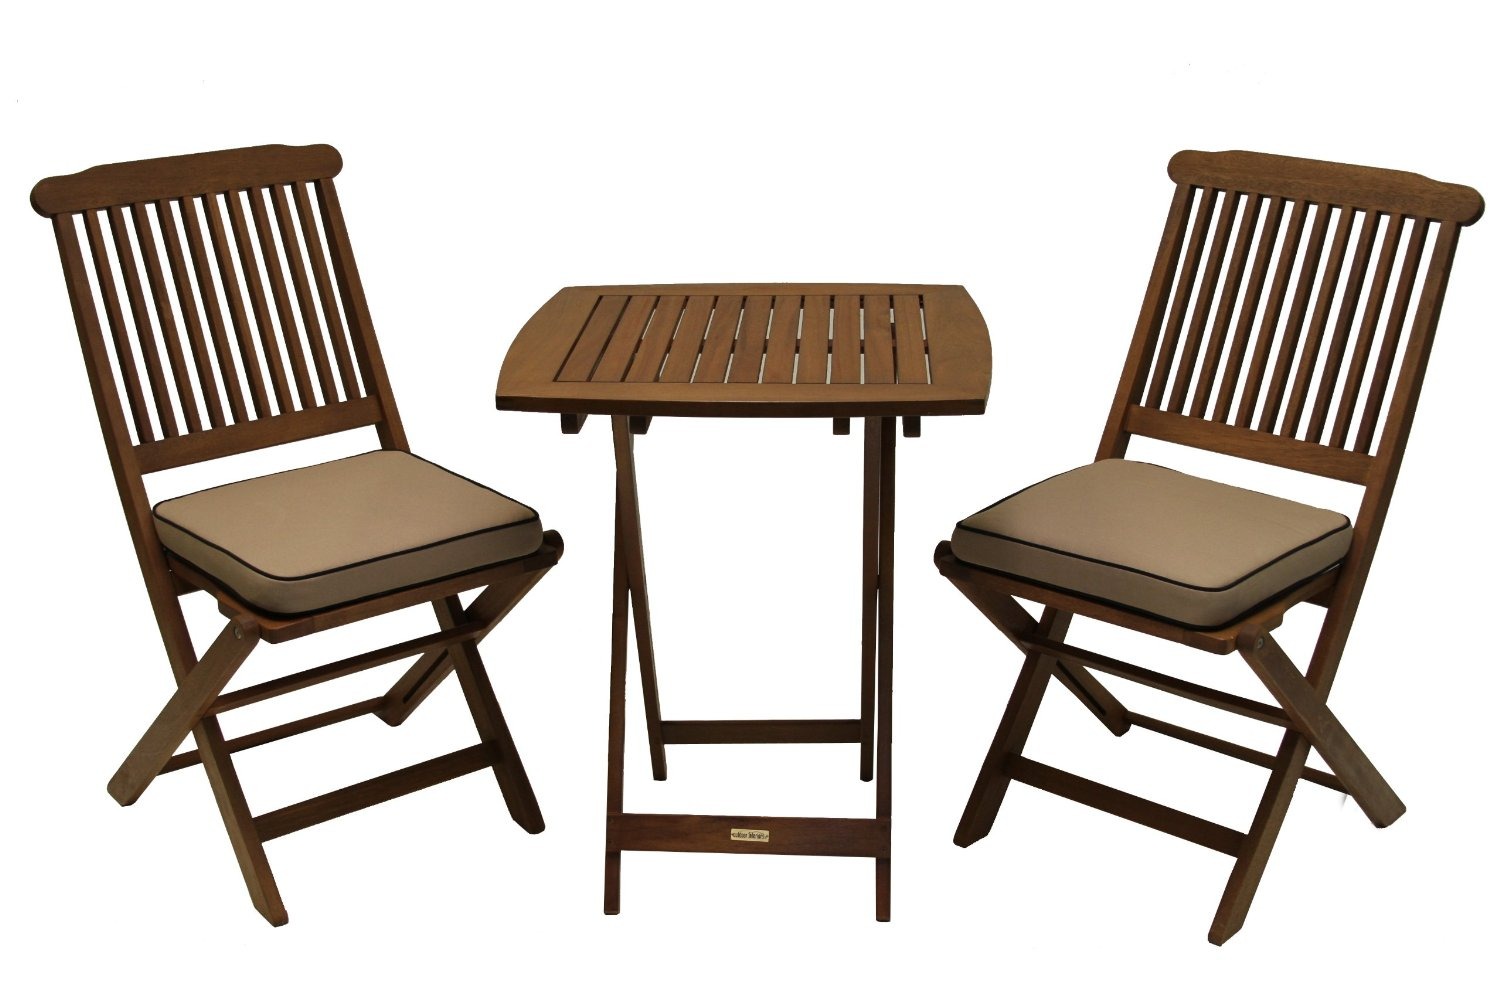 Patio furniture images july 2014 for Outside table and chairs